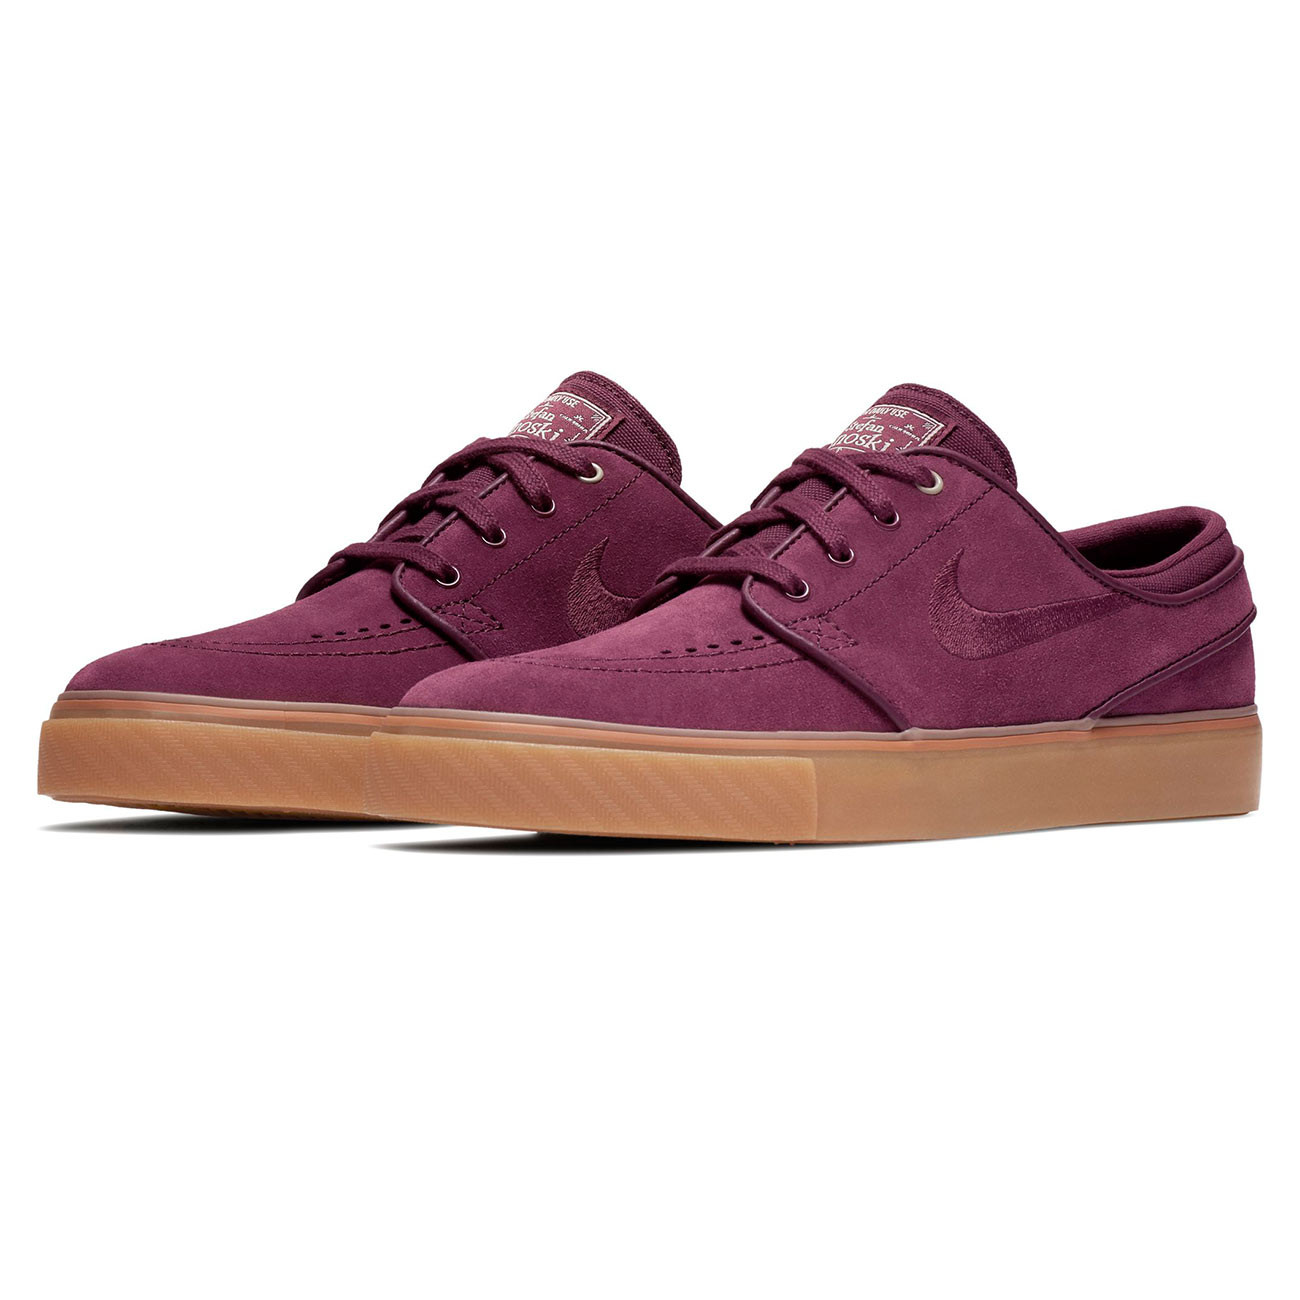 sneakers nike sb air zoom stefan janoski nght maroon nght. Black Bedroom Furniture Sets. Home Design Ideas